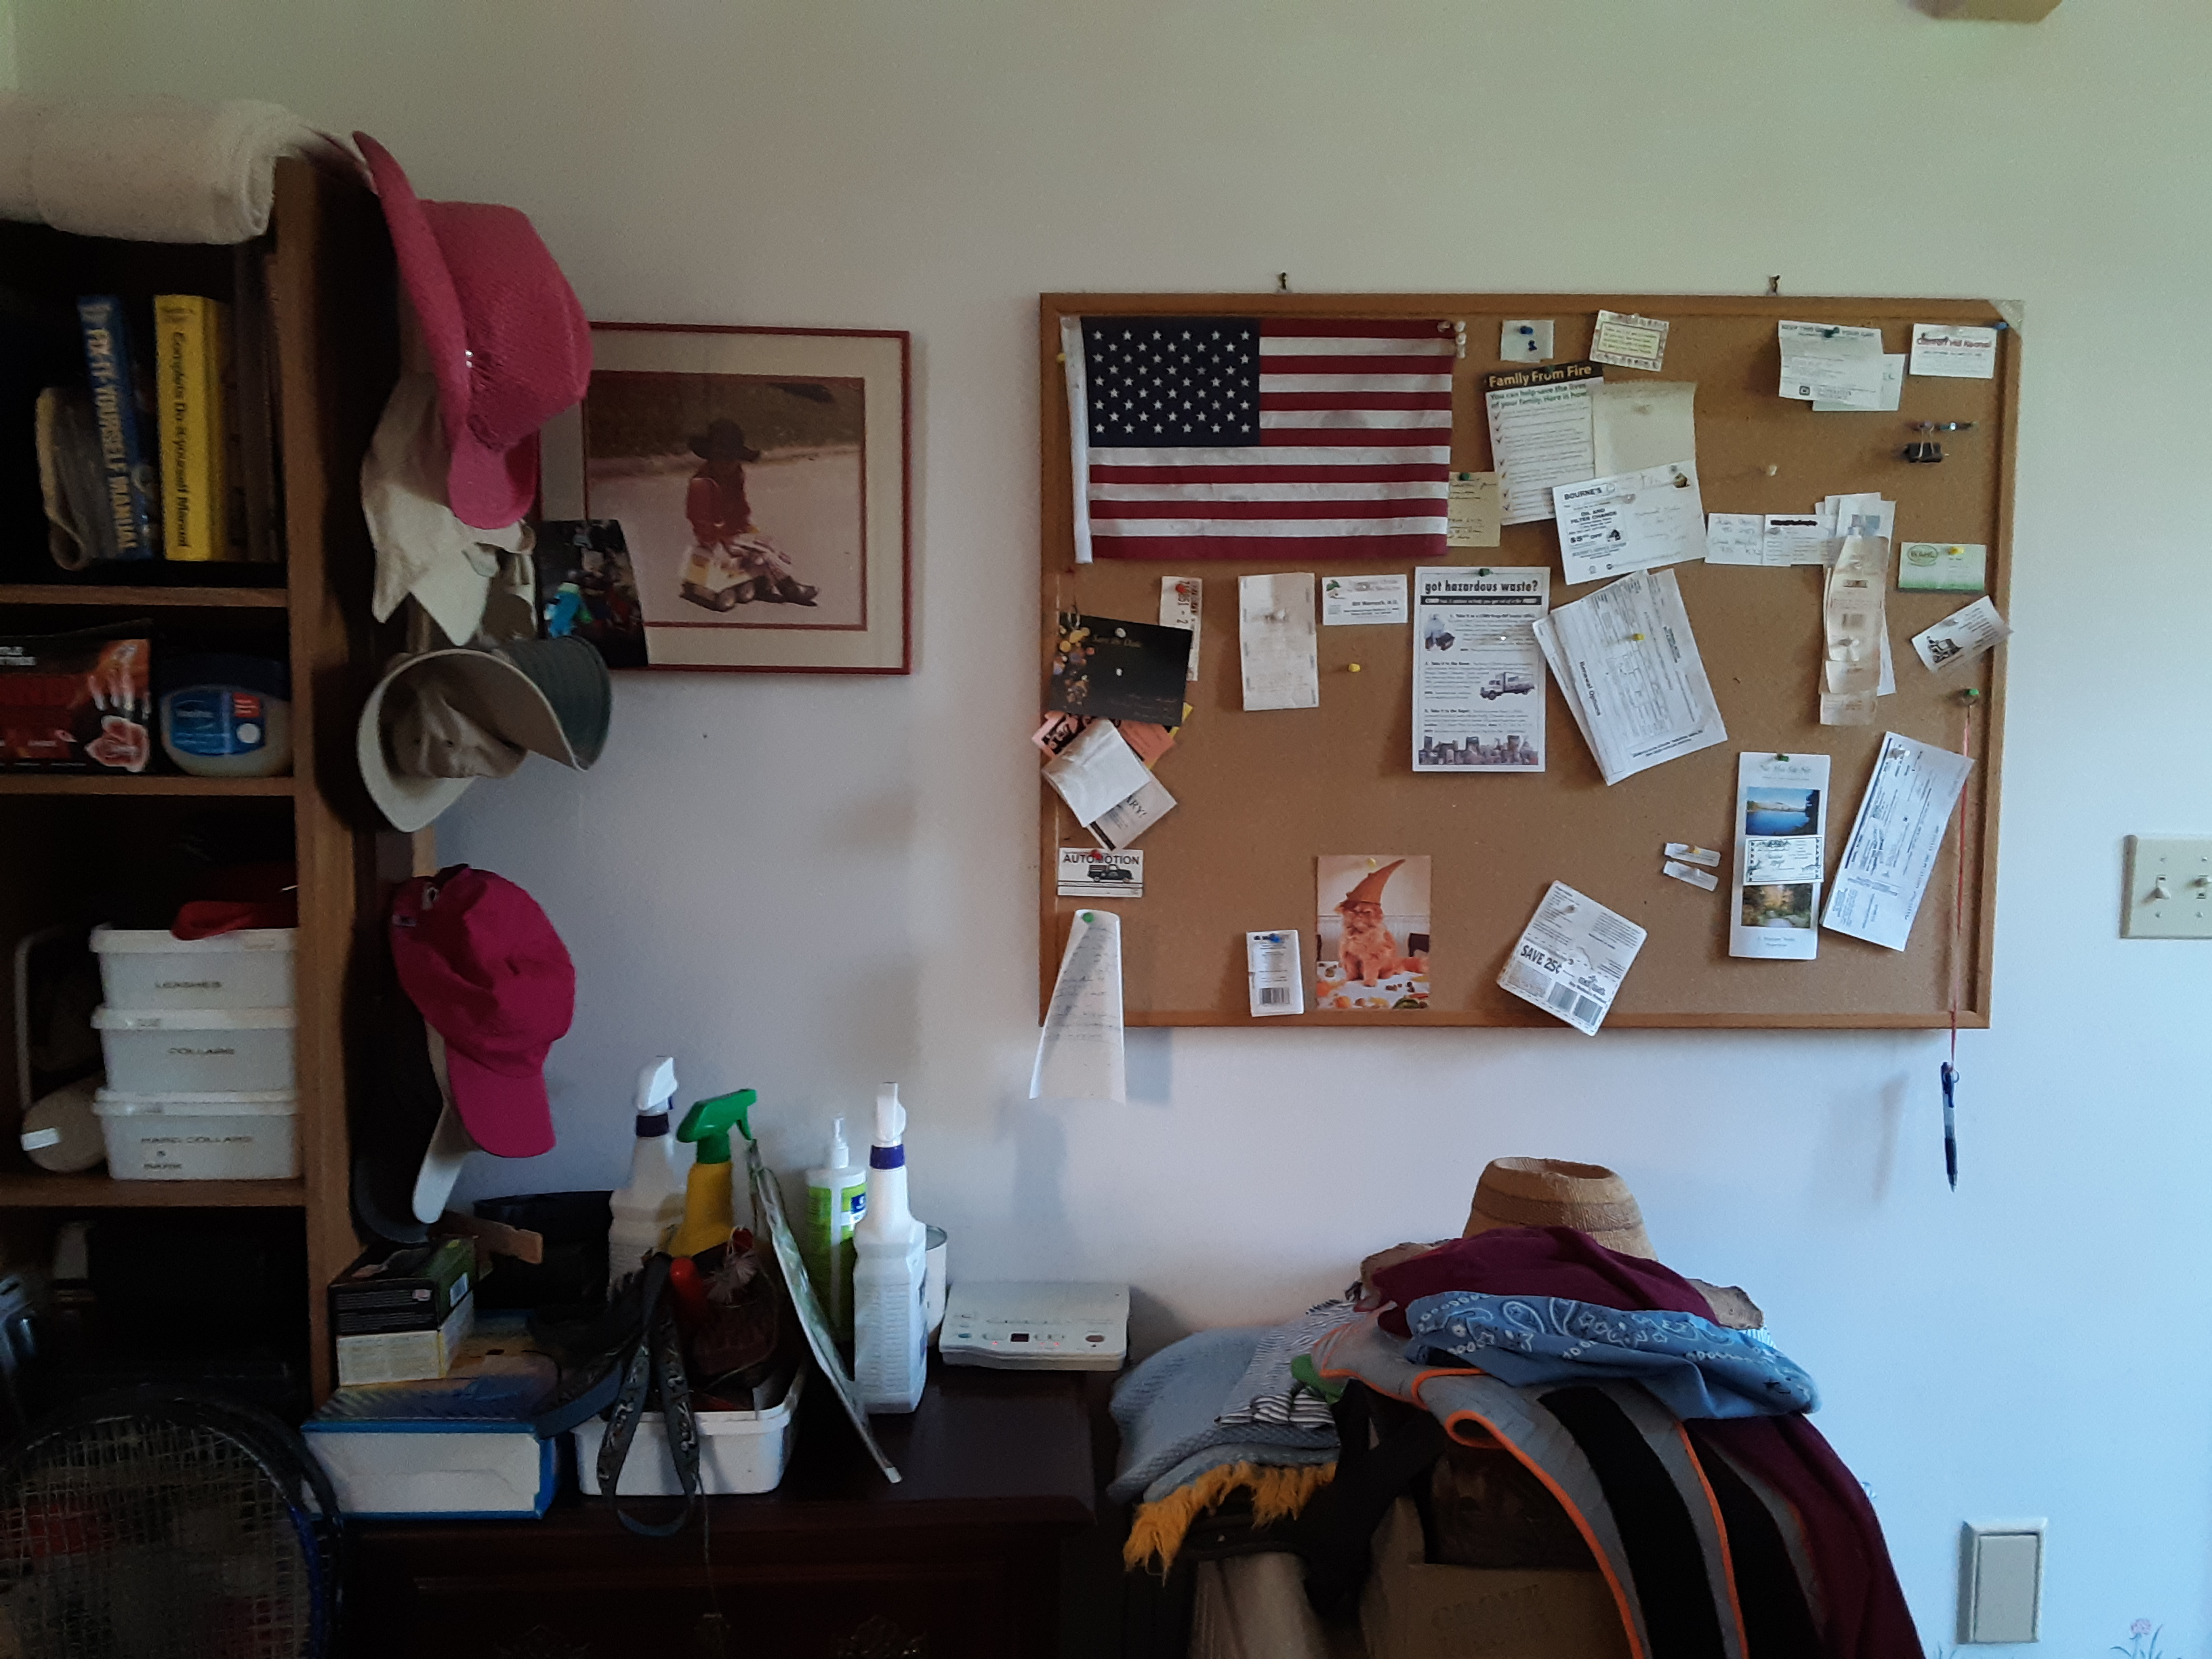 Part of the mud room before we cleared its clutter